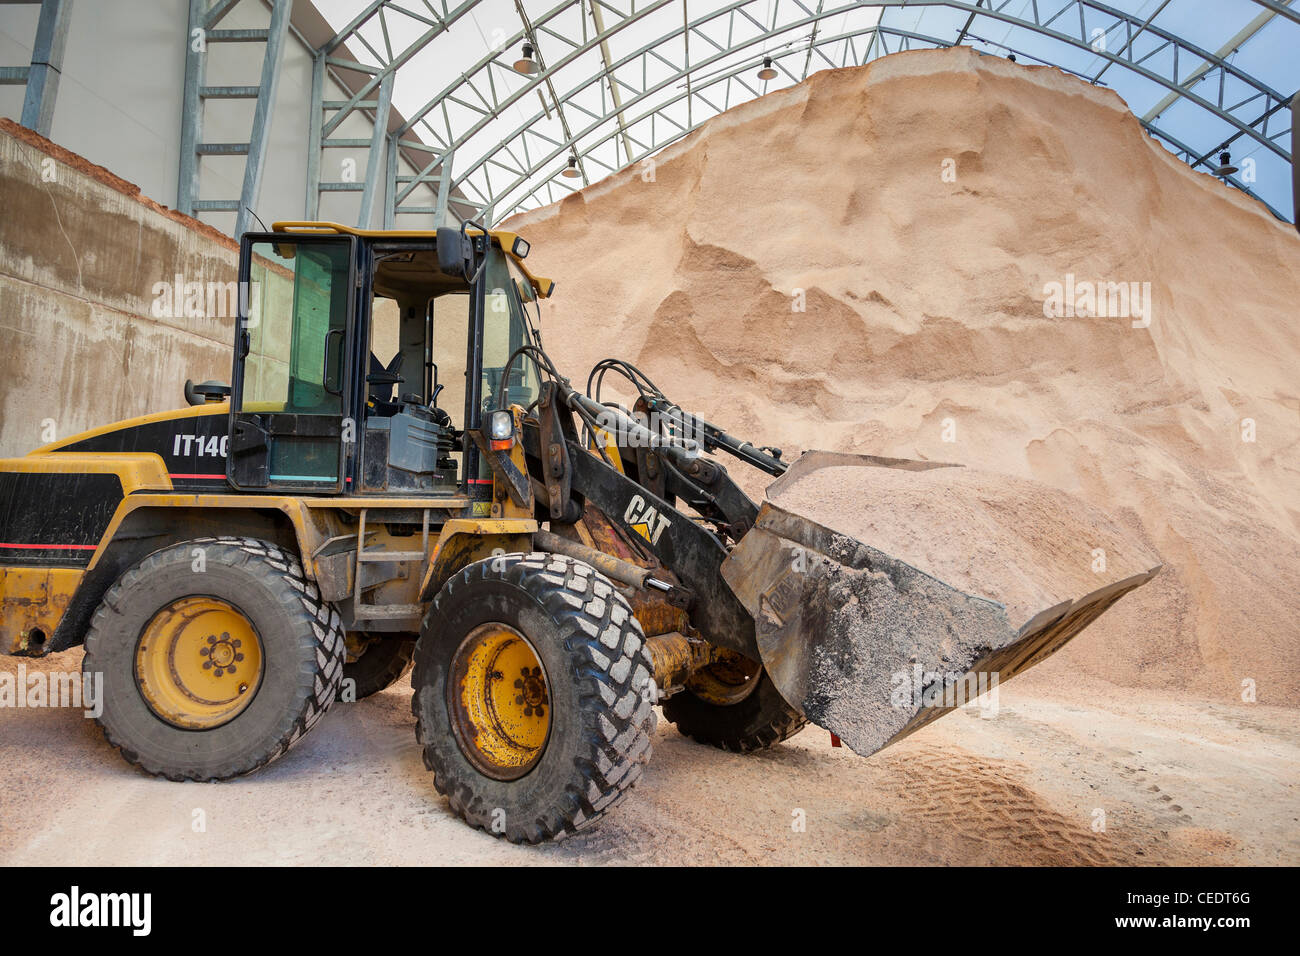 Road grit store with mechanical shovel or digger. - Stock Image